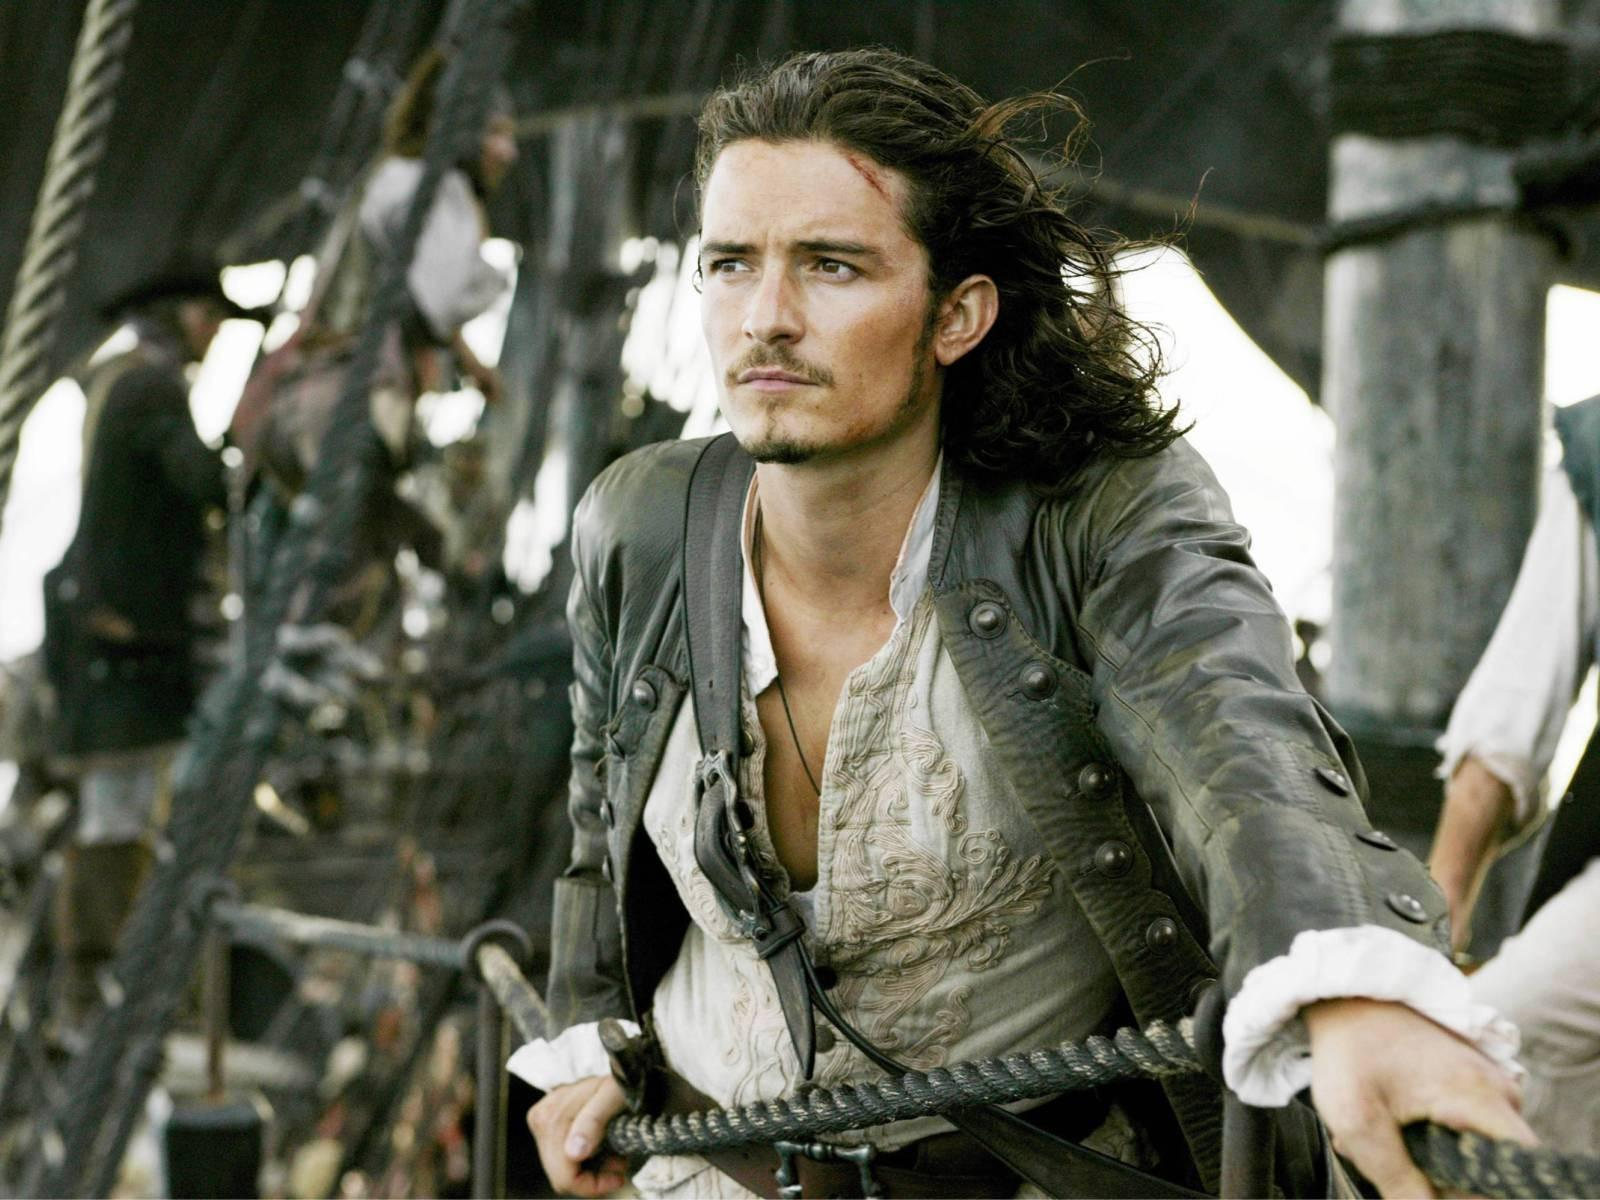 Orlando Bloom ... ovvero Will Truner nel Pirati dei Caraibi